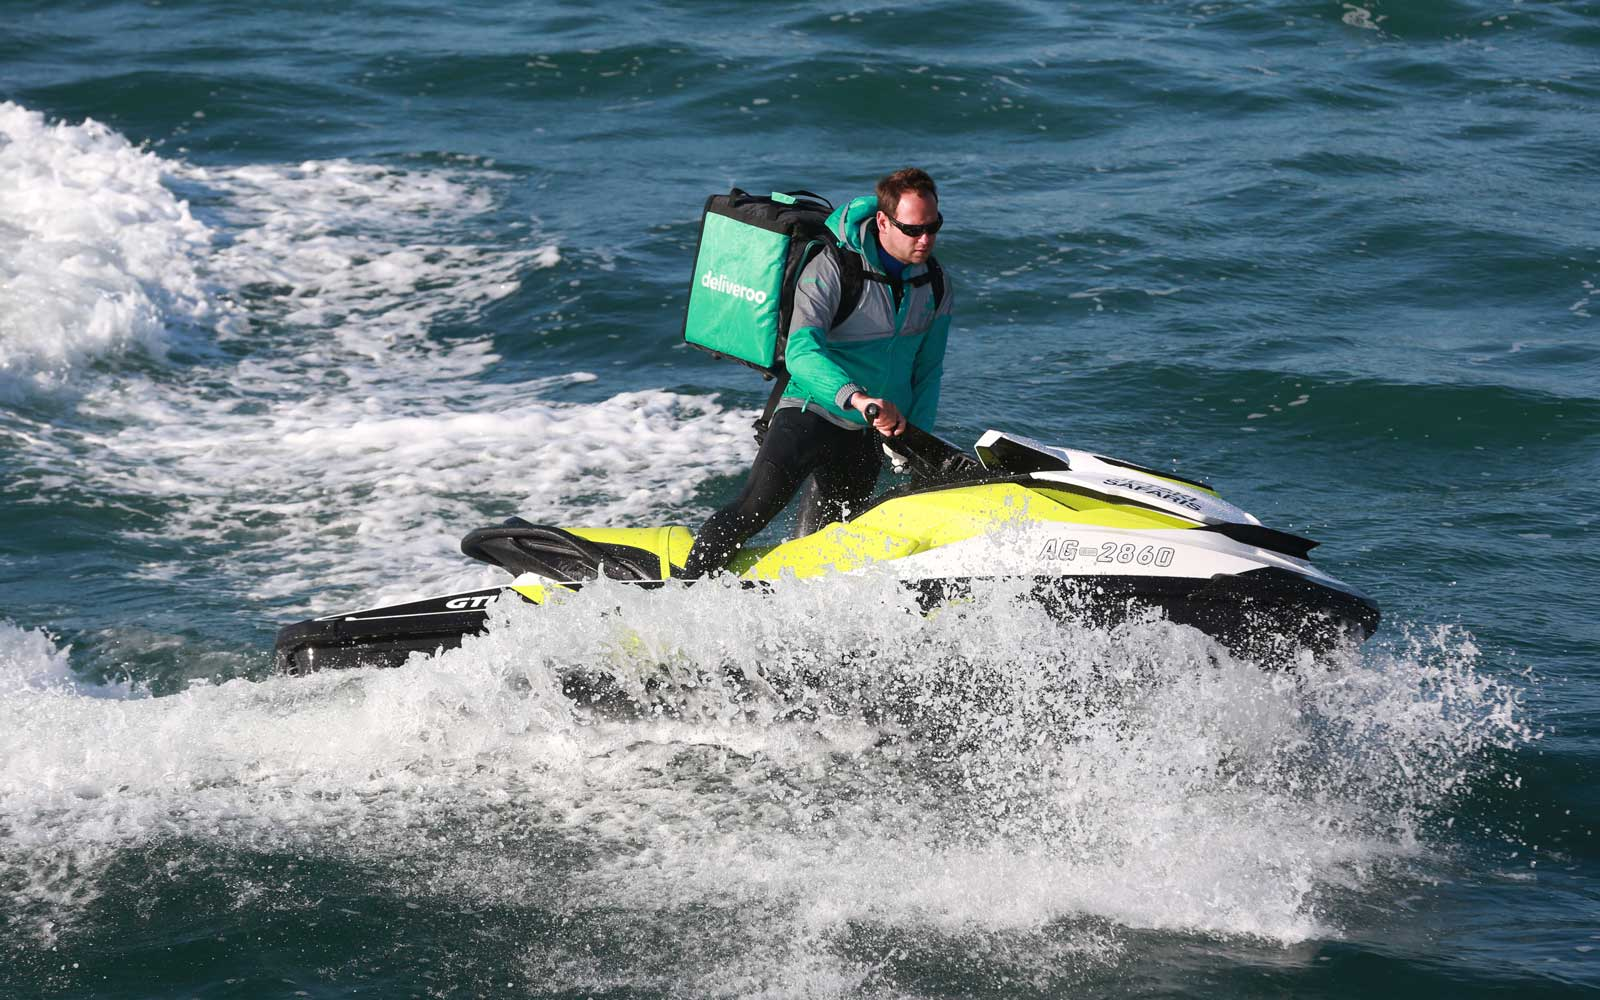 A takeaway meal via jet ski as on-demand food delivery service Deliveroo